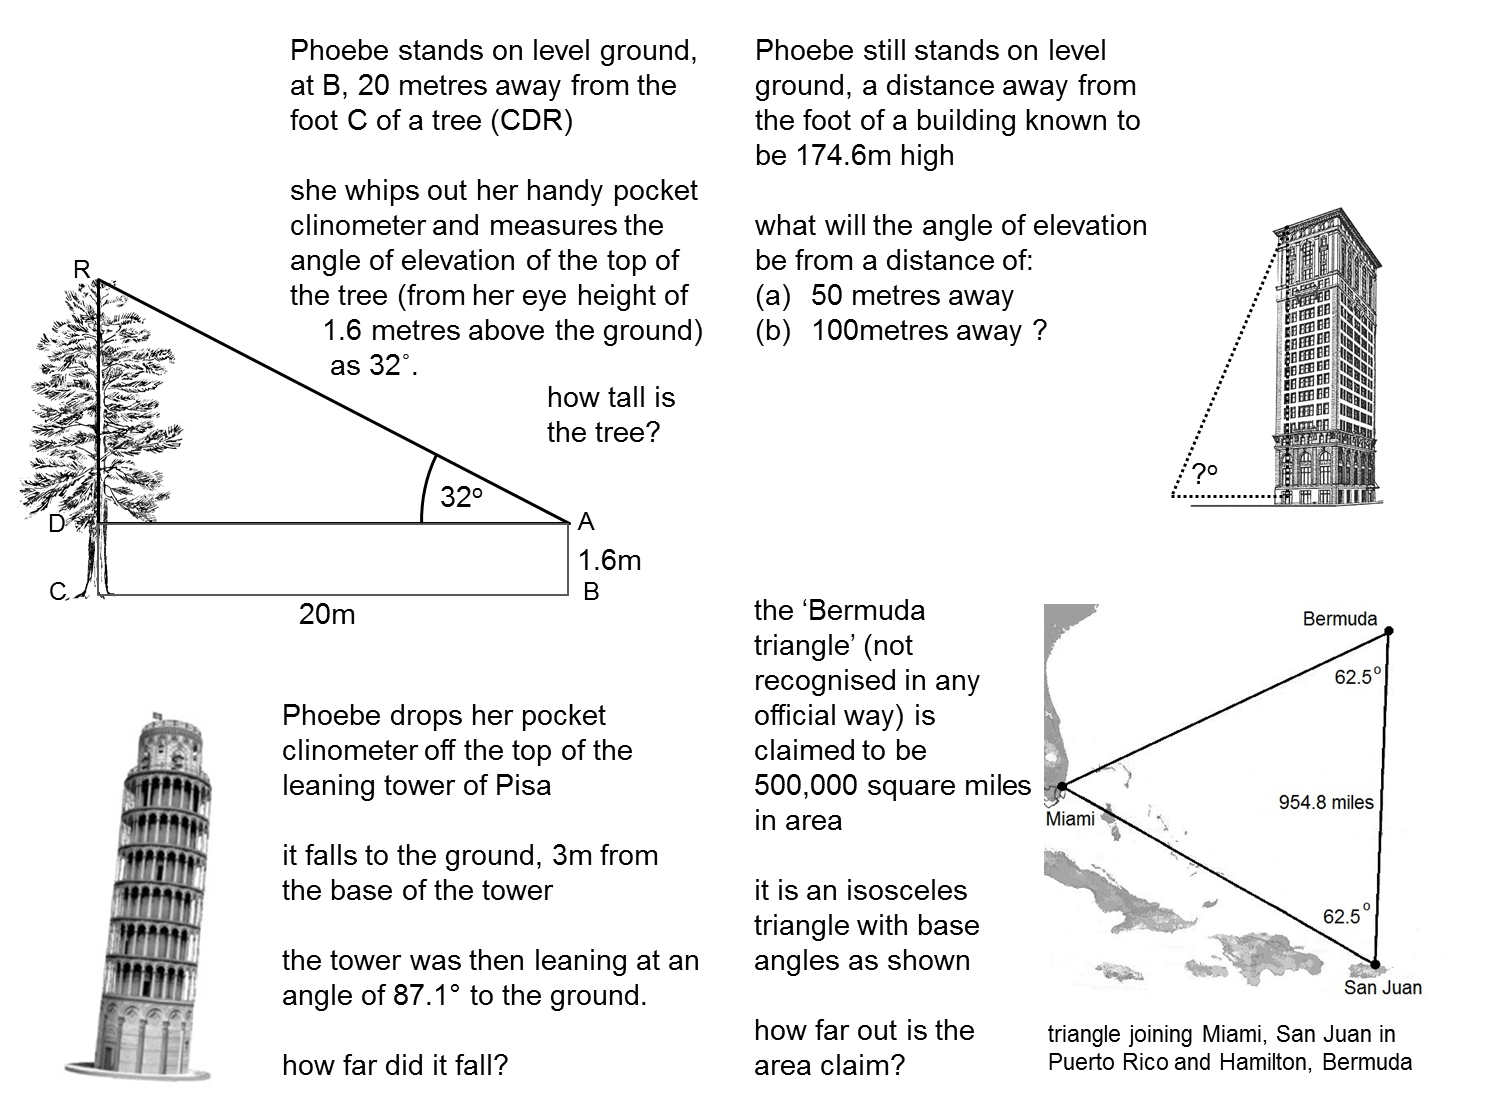 worksheet Free Trigonometry Worksheets 17 images about trigonometry on pinterest circles draw two and law of sines